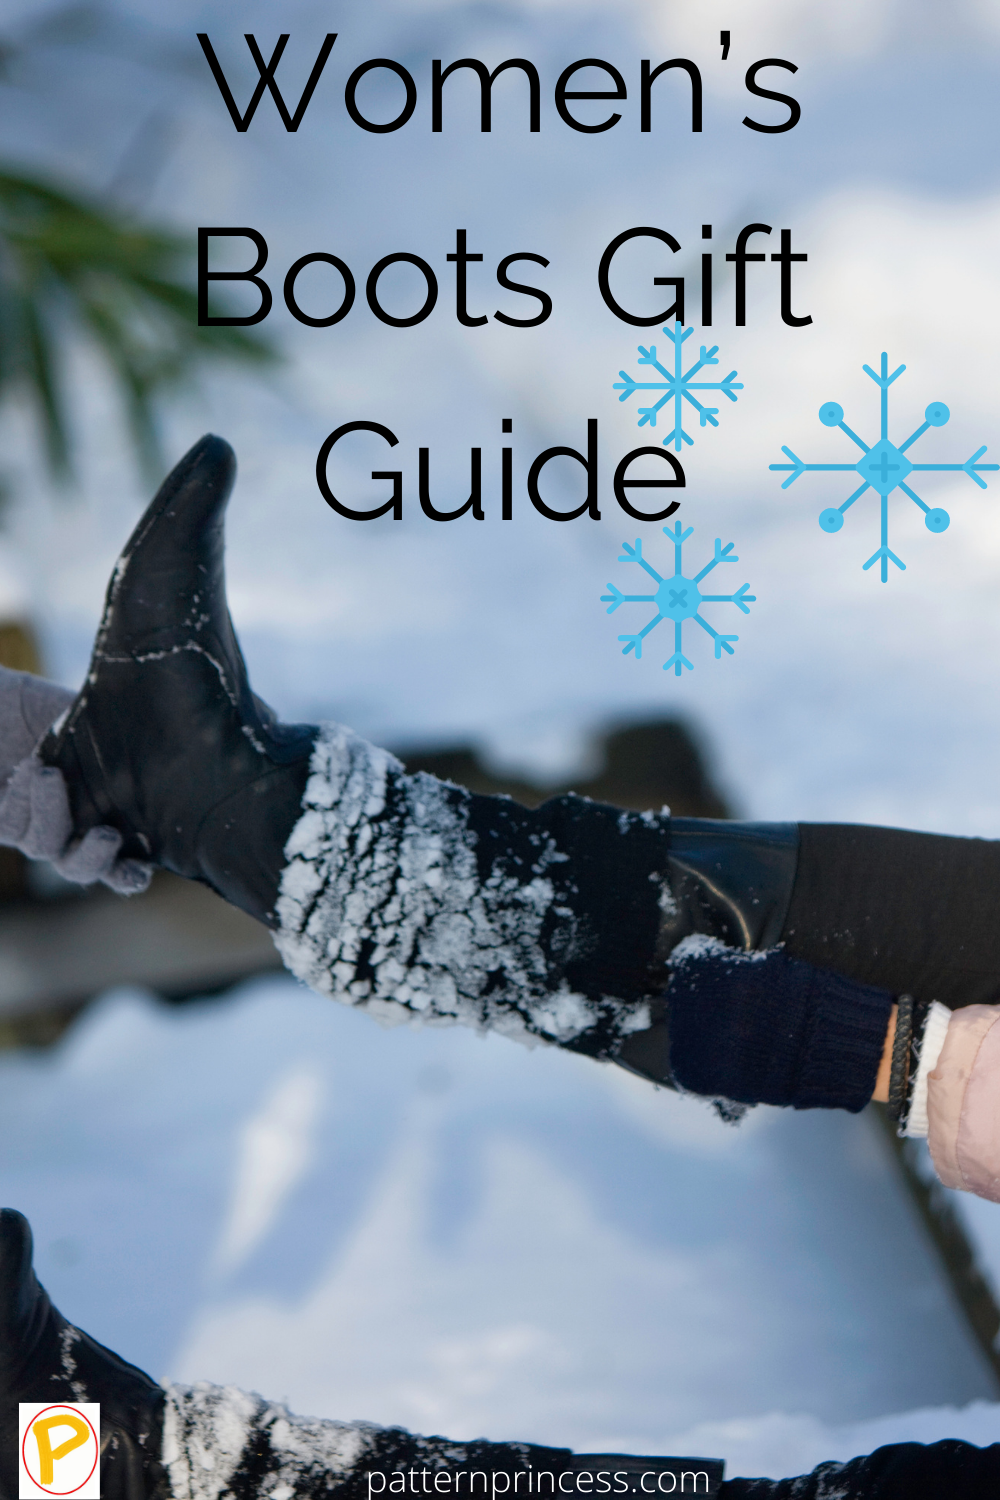 Women's Boots Gift Guide